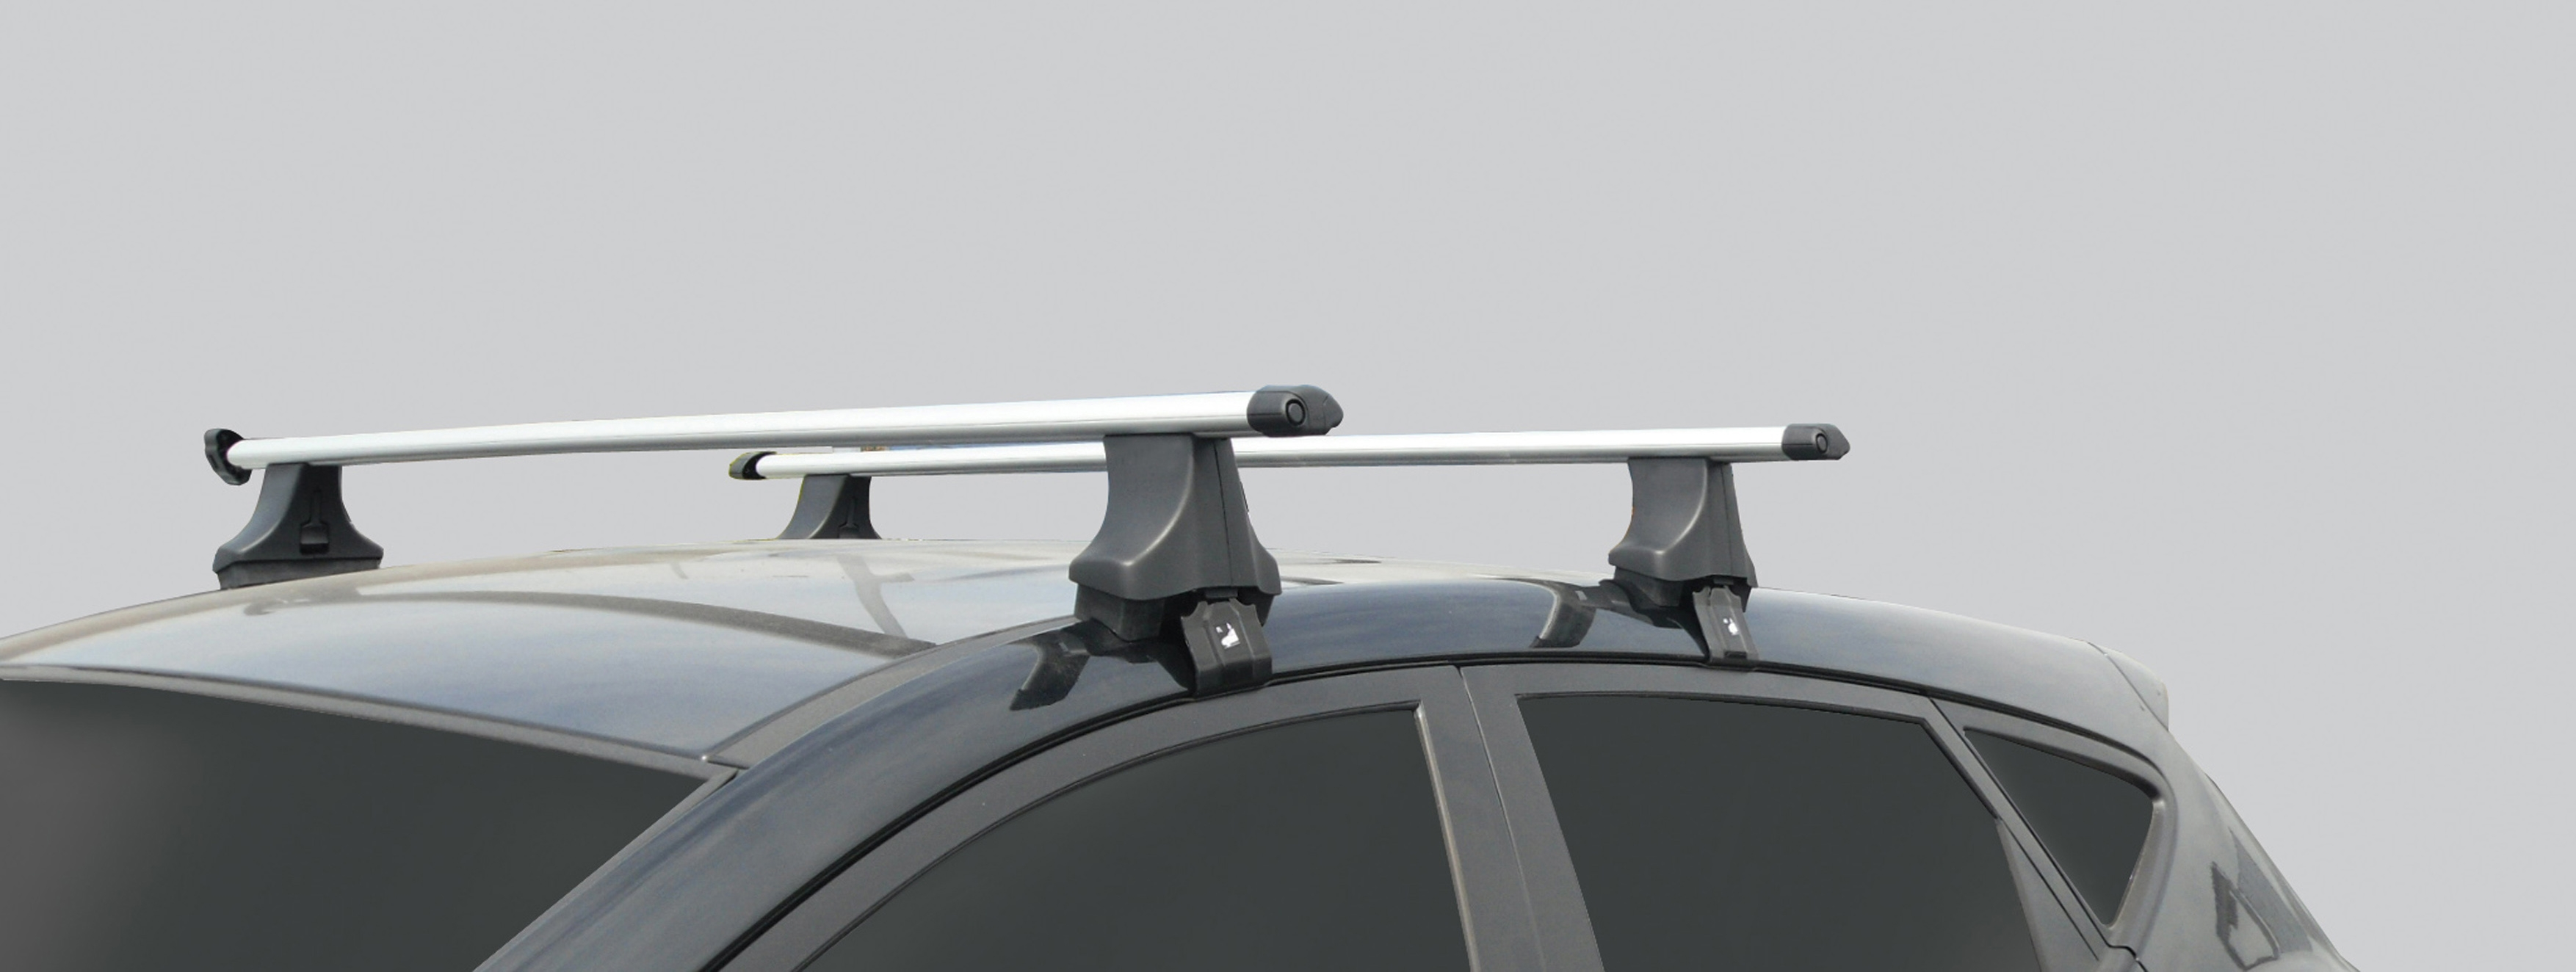 Hyundai Roof Bars   Thule Black (Style Spec Without Rails) HMY5310004